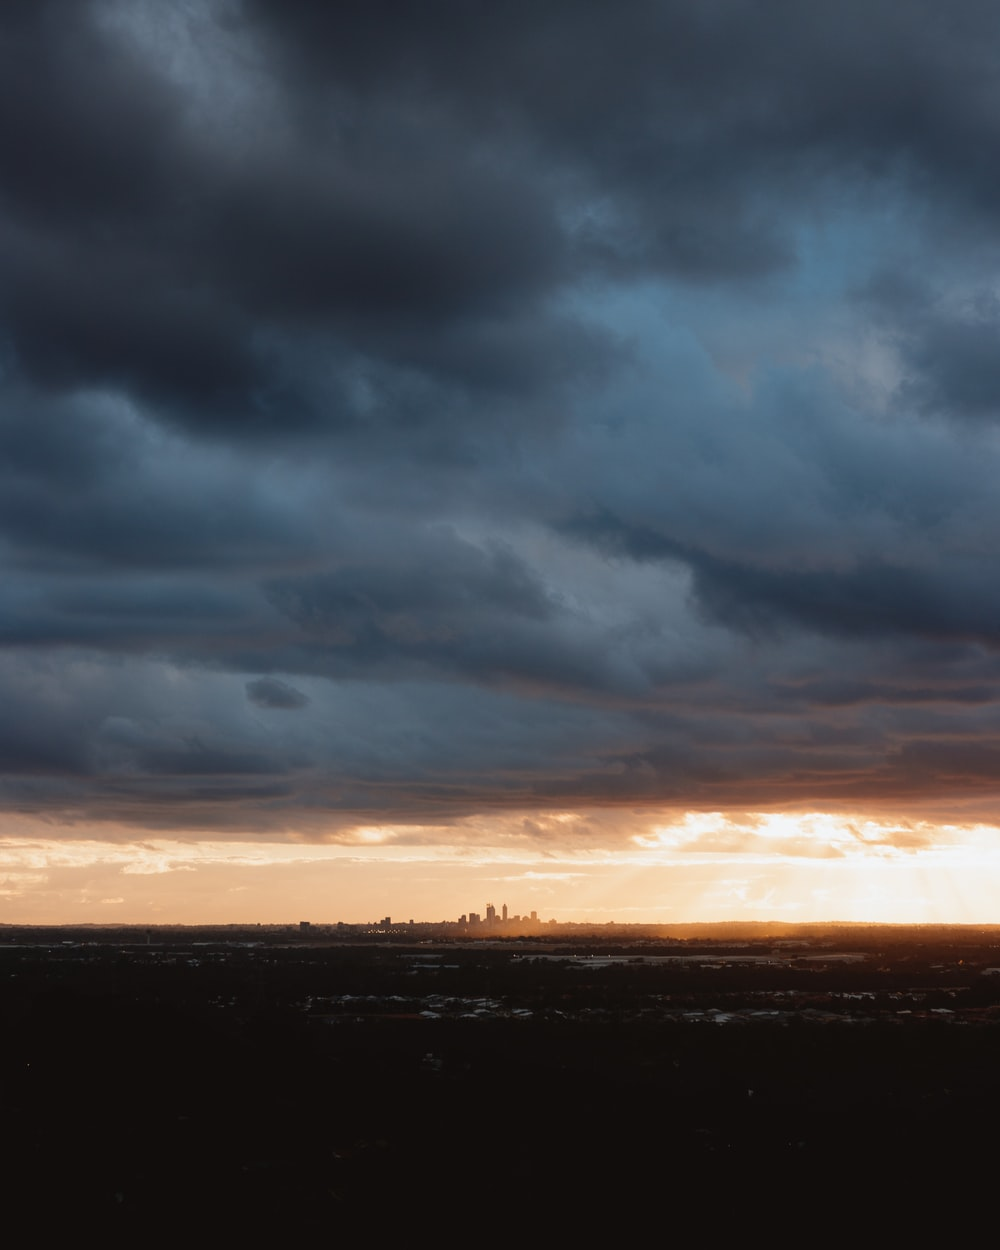 cloudy sky above cityscape